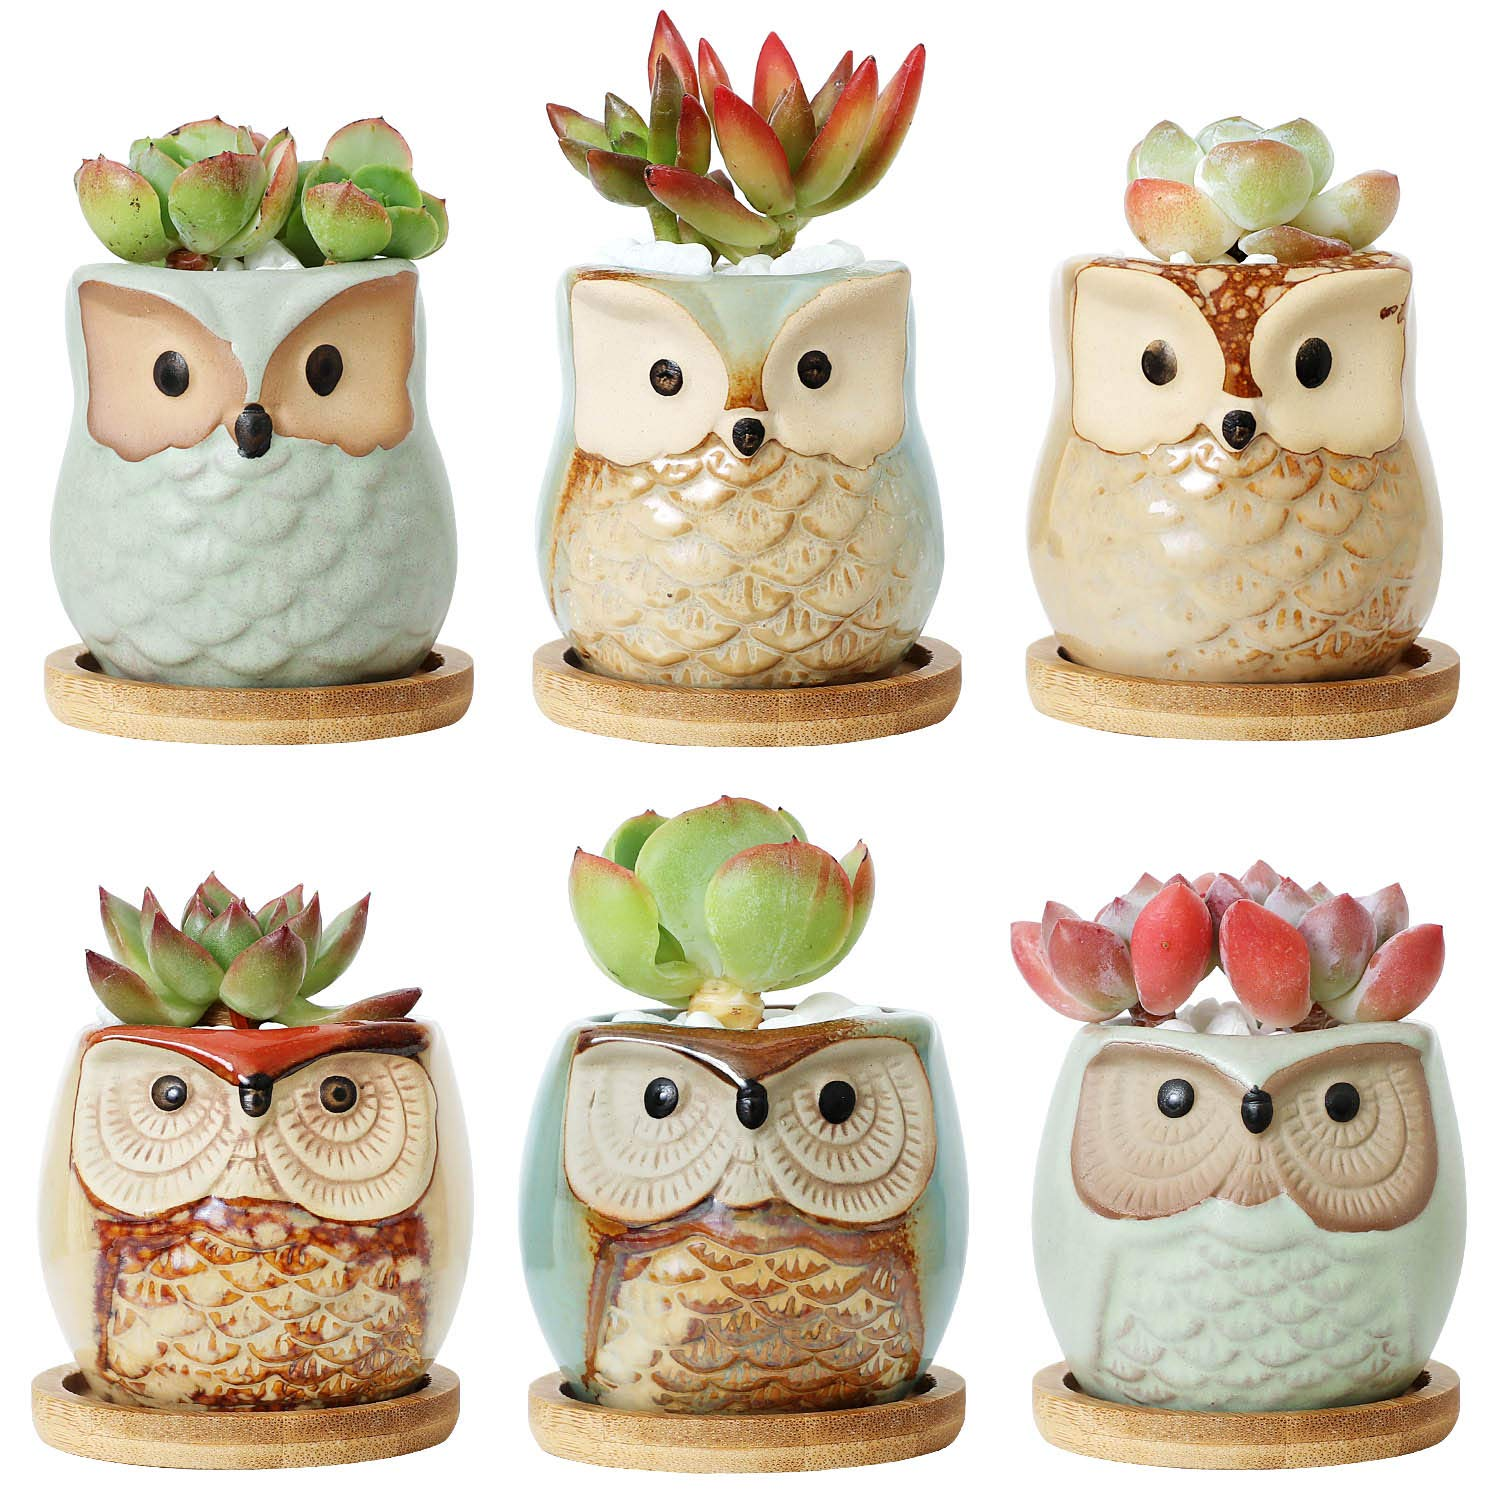 T4U 2.5 Inch Ceramic Succulent Planter Pots with Free Bamboo Saucers Mini Size Set of 6, Cute Owl Bonsai Pots Home and Office Decoration Desktop Windowsill Gift for Gardener